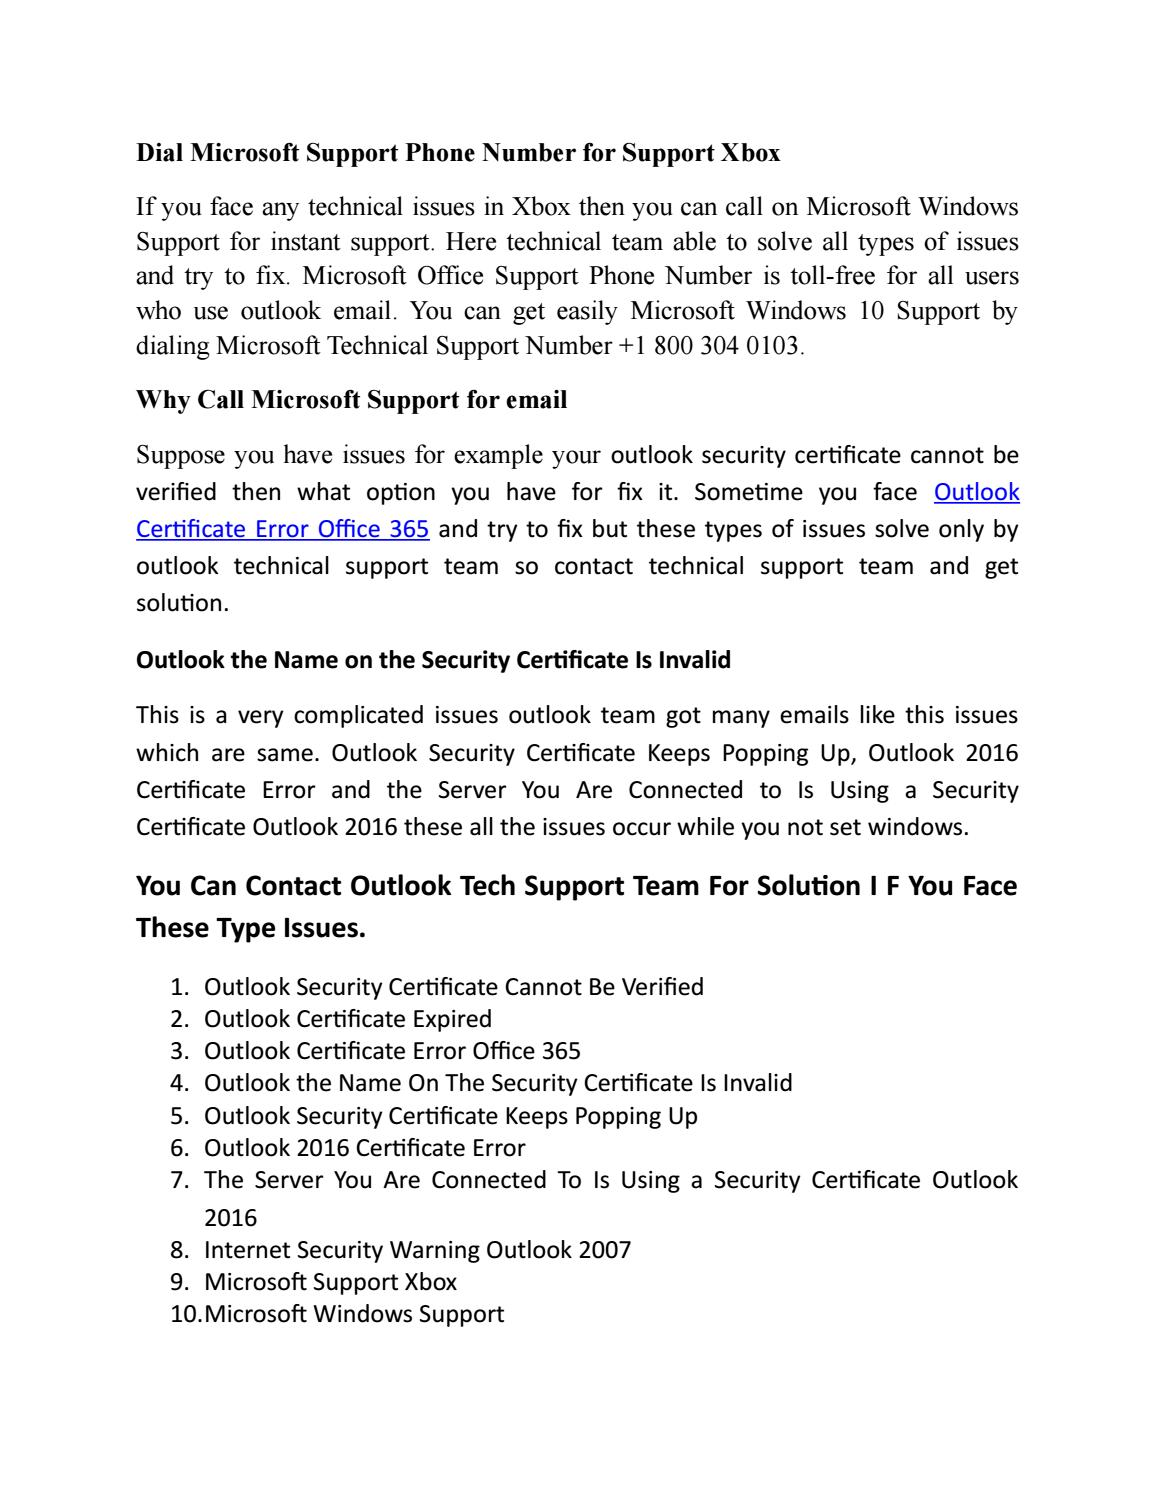 Dial microsoft support phone number for support xbox by mike